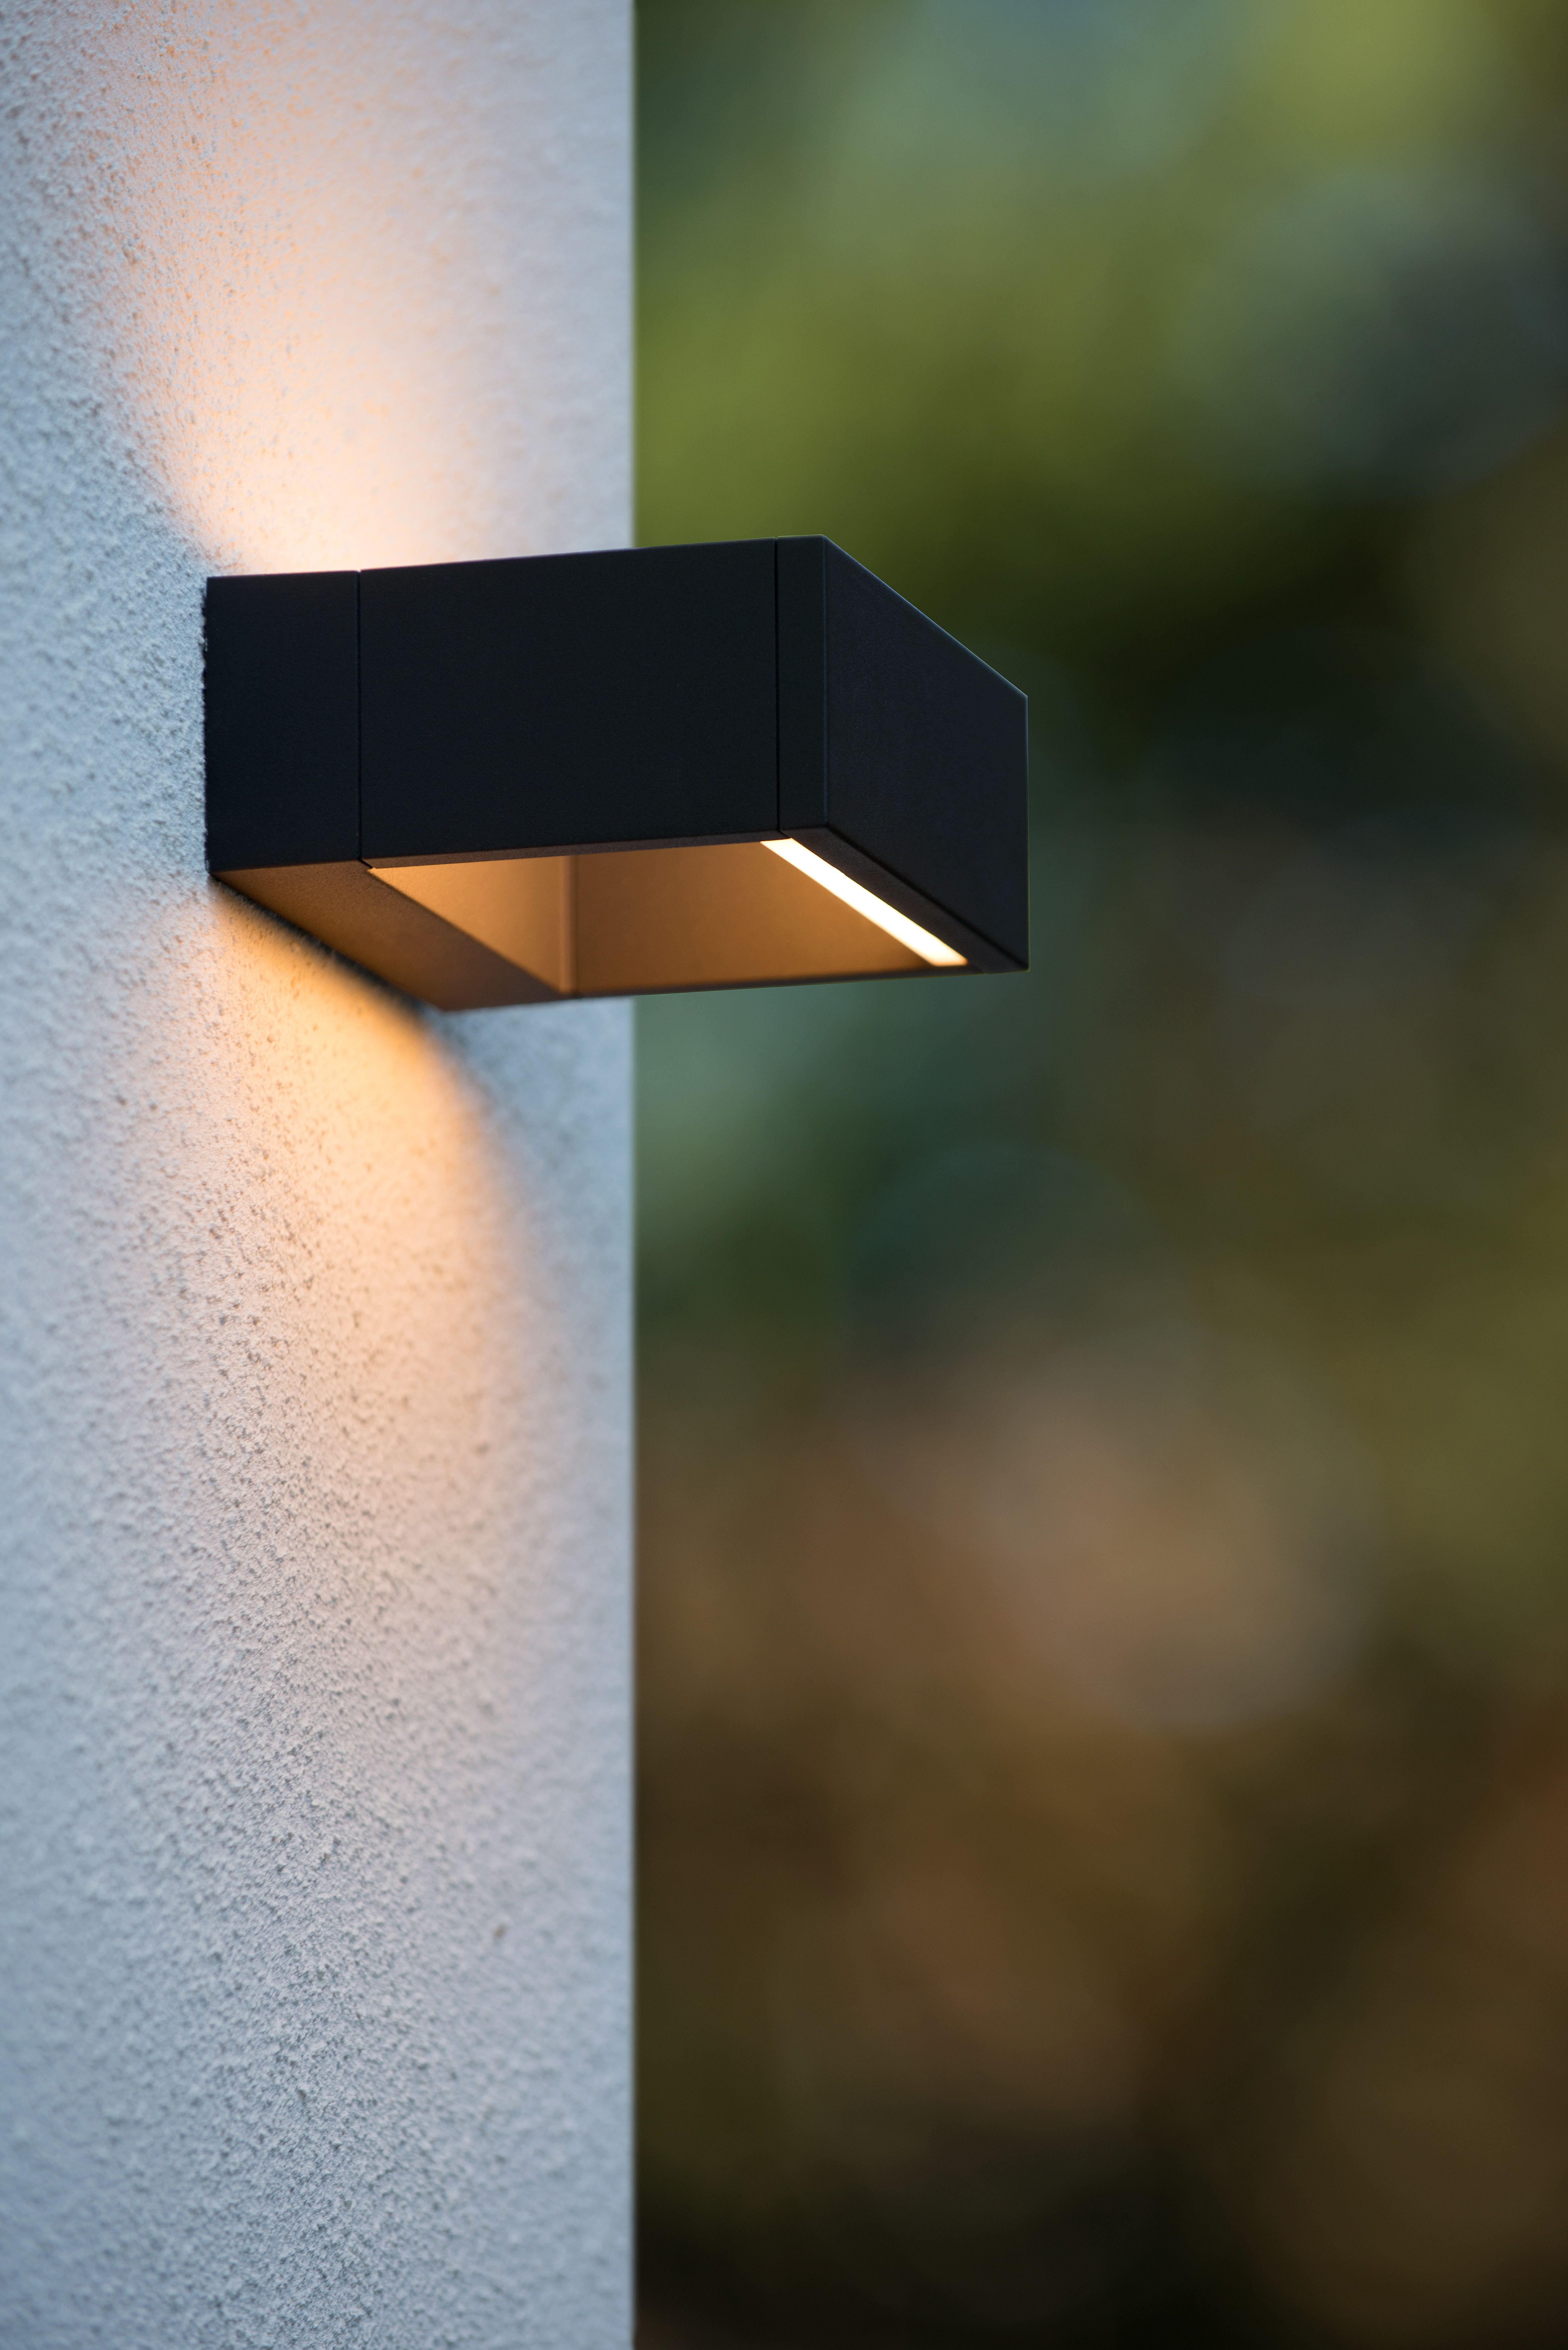 Goa Wall Light Outdoor Led 1x6w 3000k Ip54 Anthracite Outdoor Wall Lamps Wall Lights Wall Lamp Design